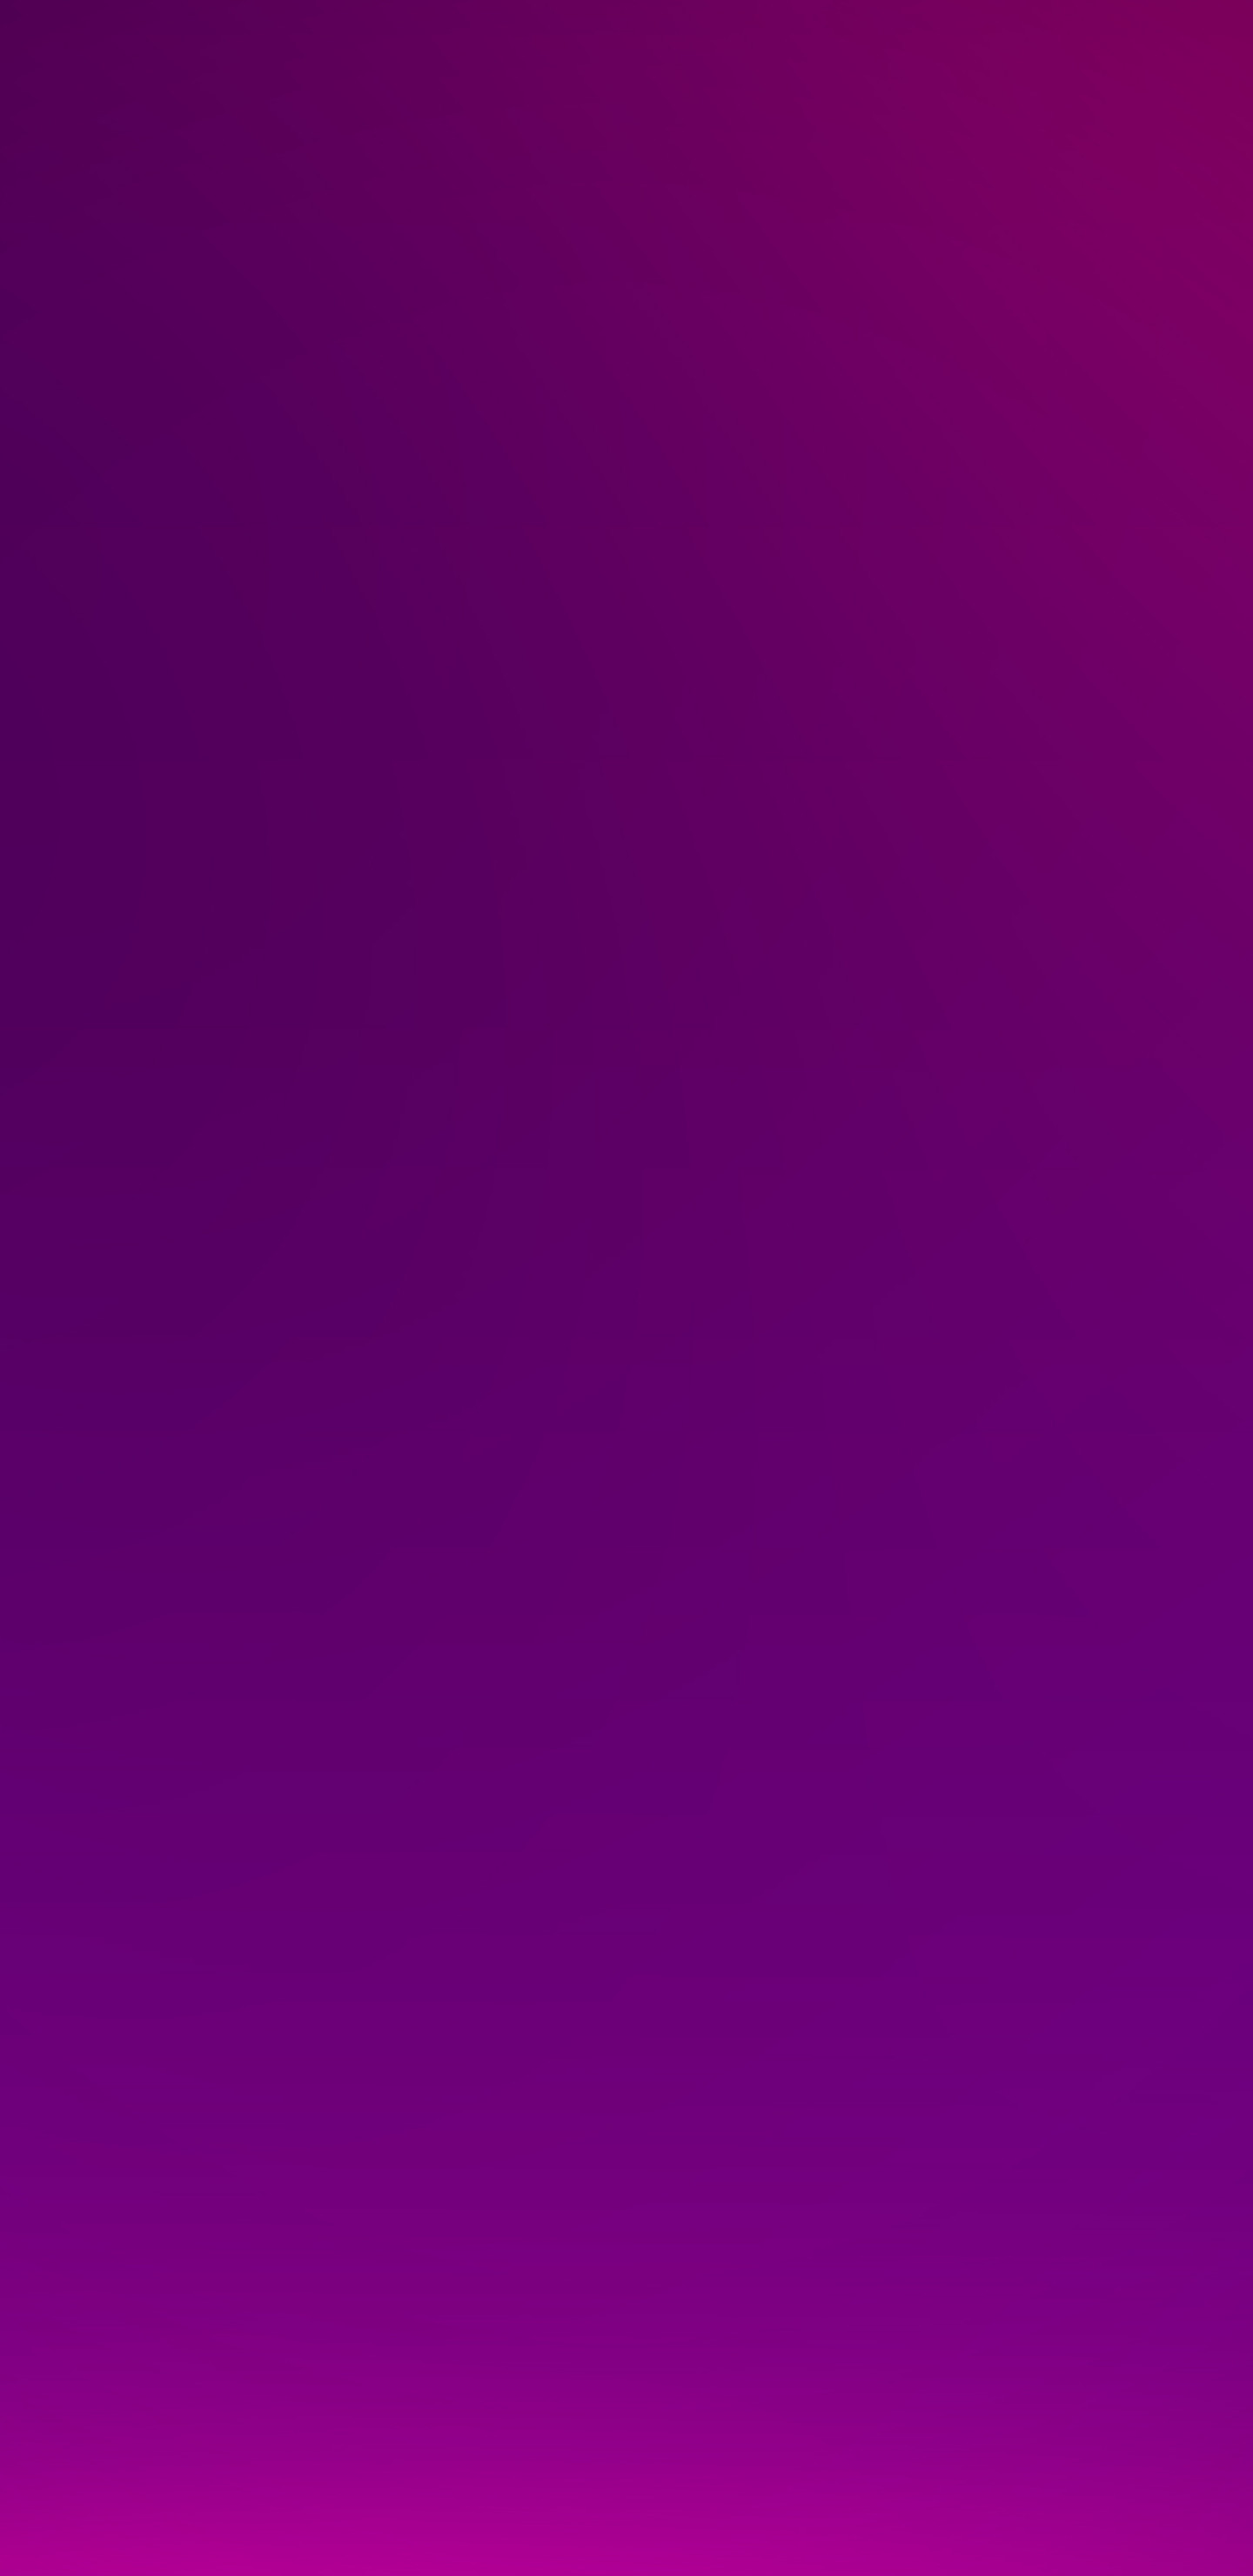 1440x2960 Abstract Purple. Wallpaper 702709